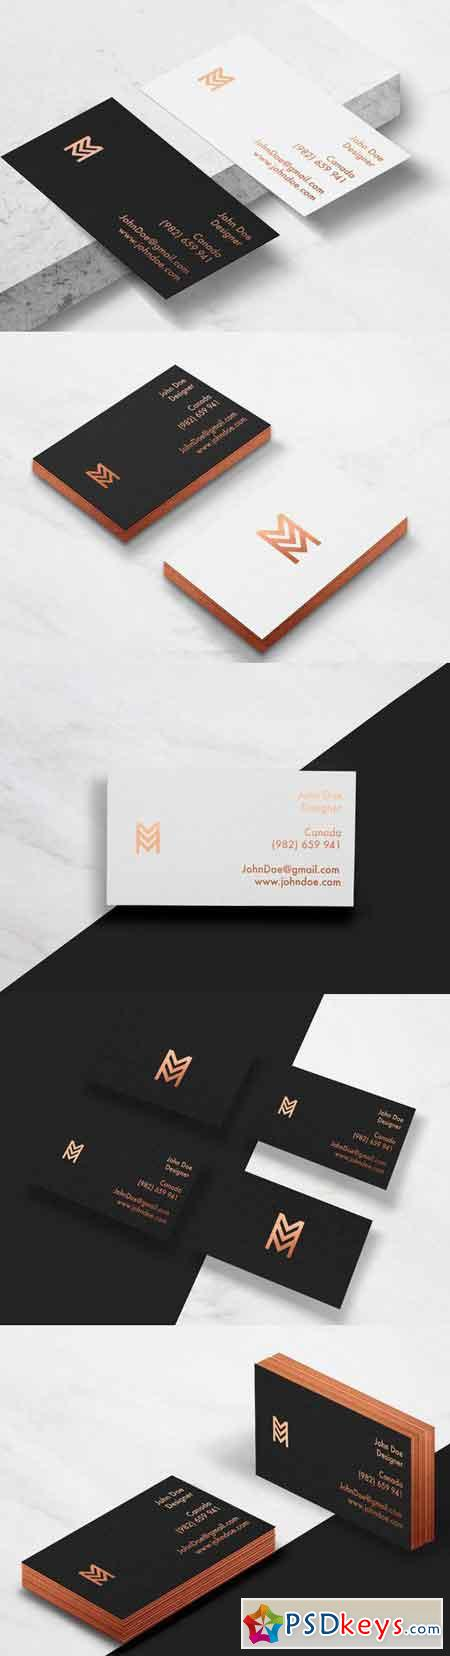 Business cards mockup vol 2 677020 free download photoshop vector business cards mockup vol 2 677020 reheart Gallery